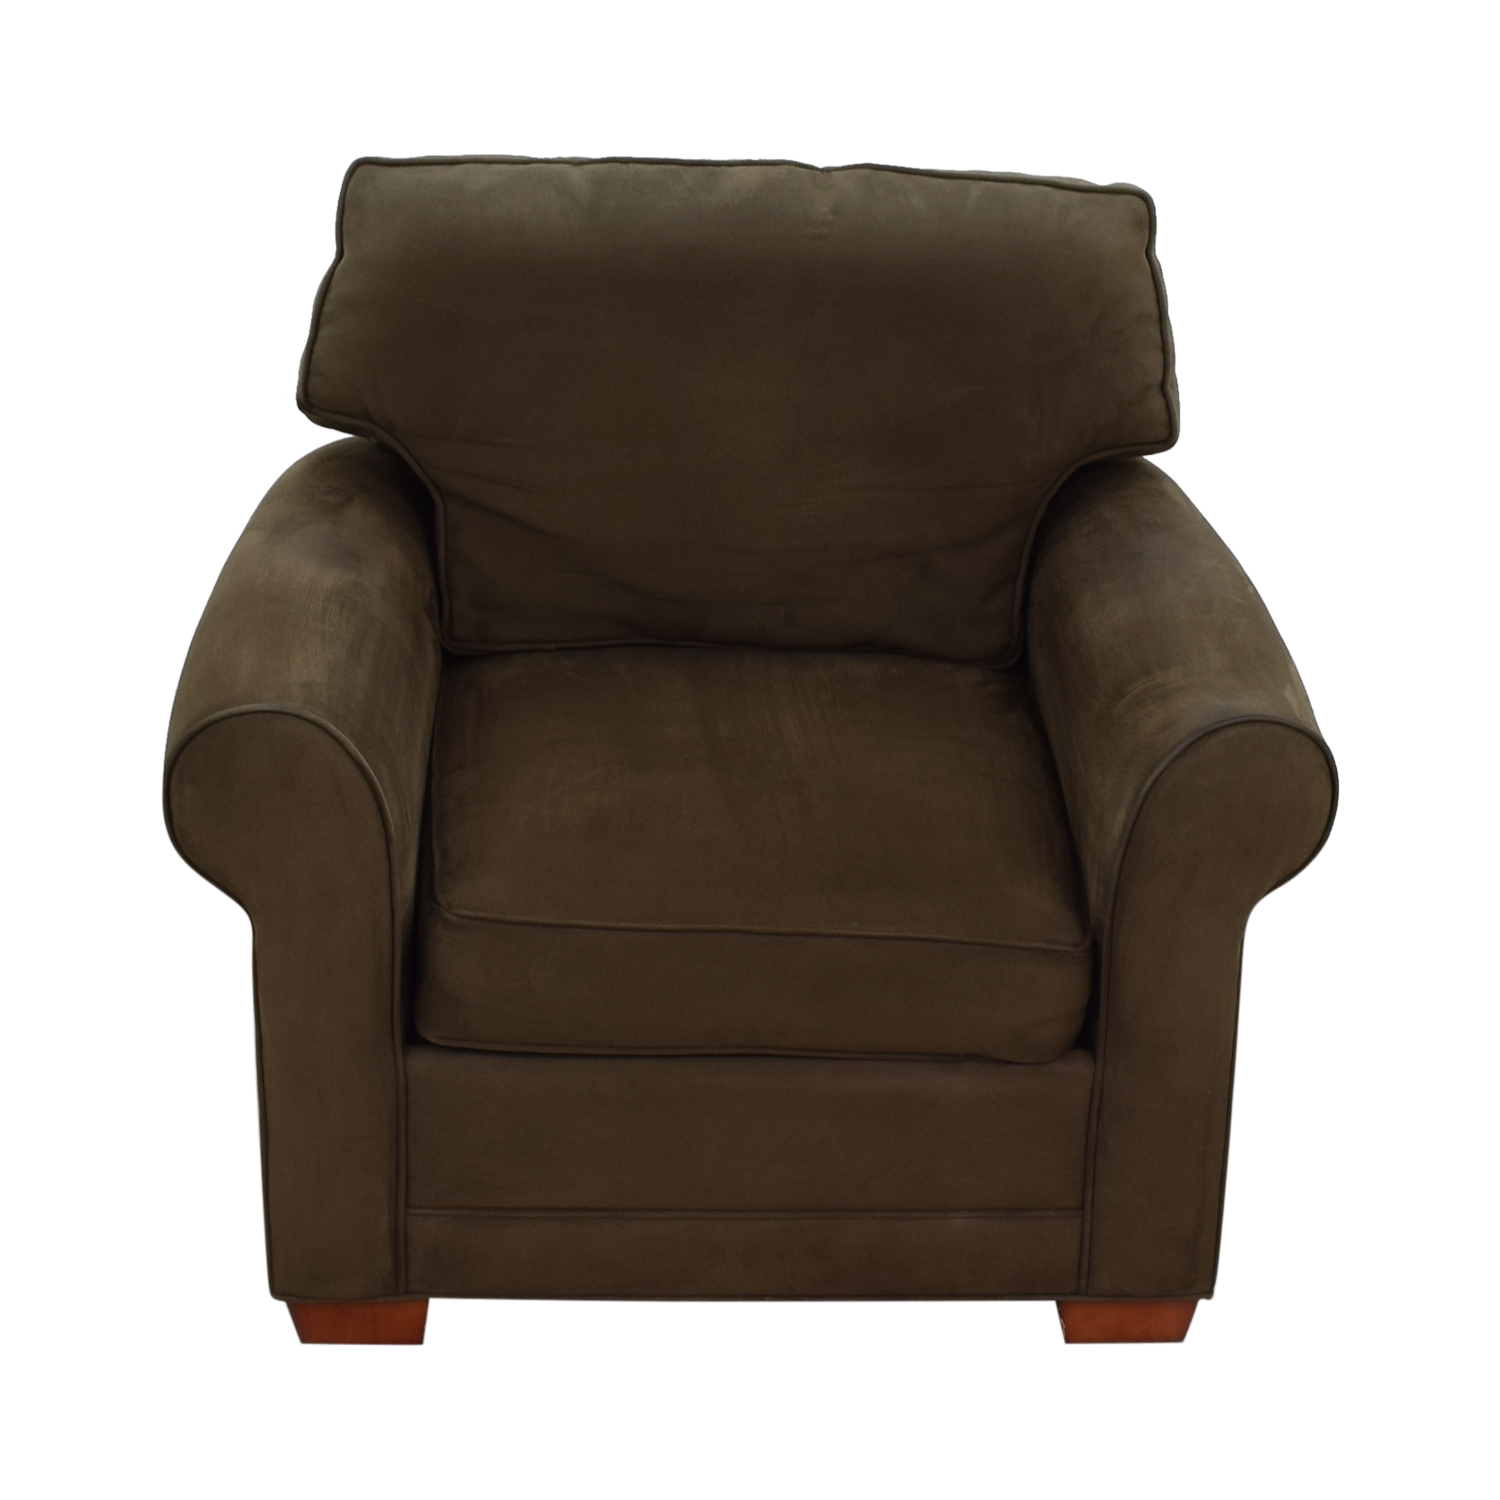 Raymour & Flanigan Raymour & Flanigan Brown Microfiber Accent Chair coupon